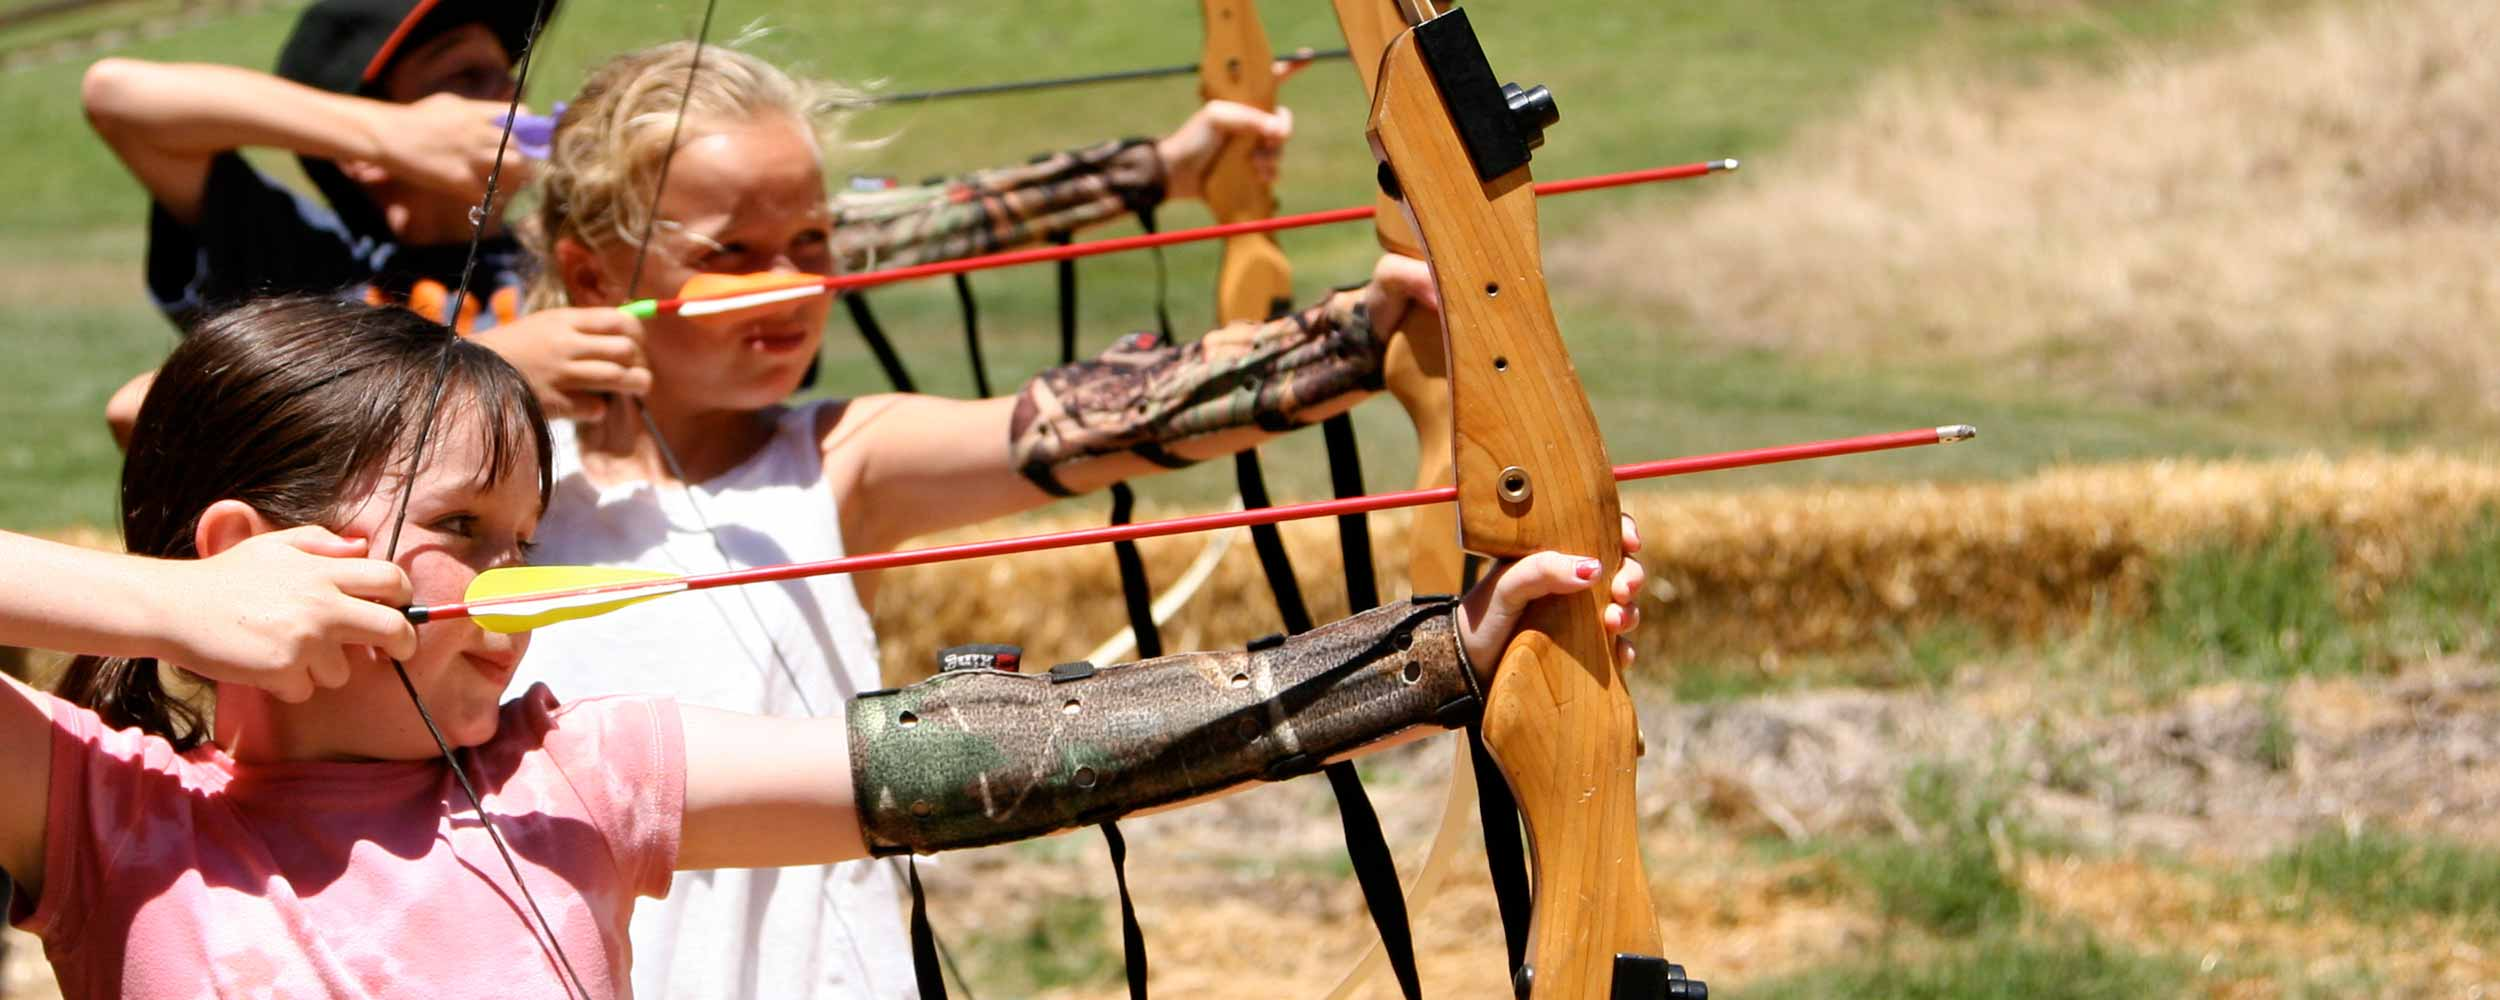 kids archery - Alisal Resort in Solvang California